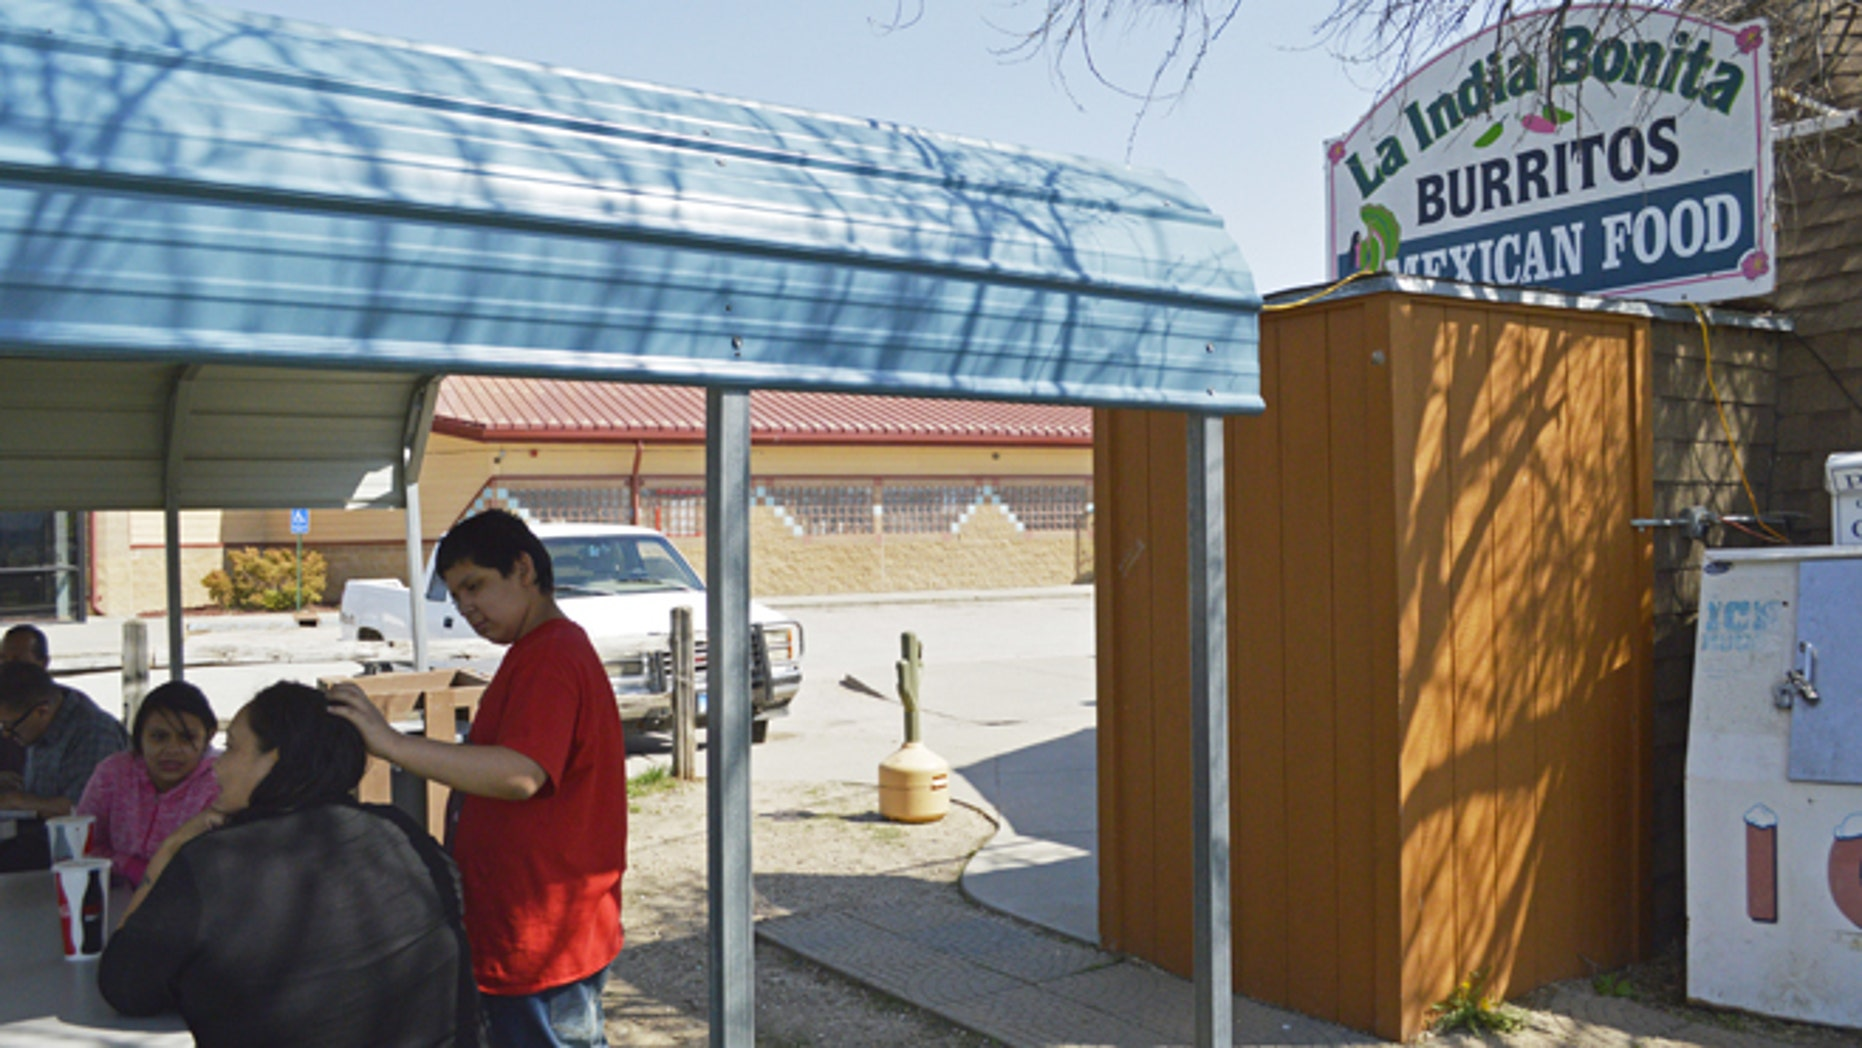 FILE - In this May 1, 2015 file photo, customers eat outside La India Bonita Mexican Restaurant in Kyle, S.D., on the Pine Ridge Indian Reservation. The population growth of U.S. Latinos is slowing thanks to lower immigration and declining birthrates, although states like North Dakota, South Dakota, and Tennessee are seeing Latino population spikes, according to a Pew Research Center study released Thursday, Sept. 8, 2016. (AP Photo/Russell Contreras, File)